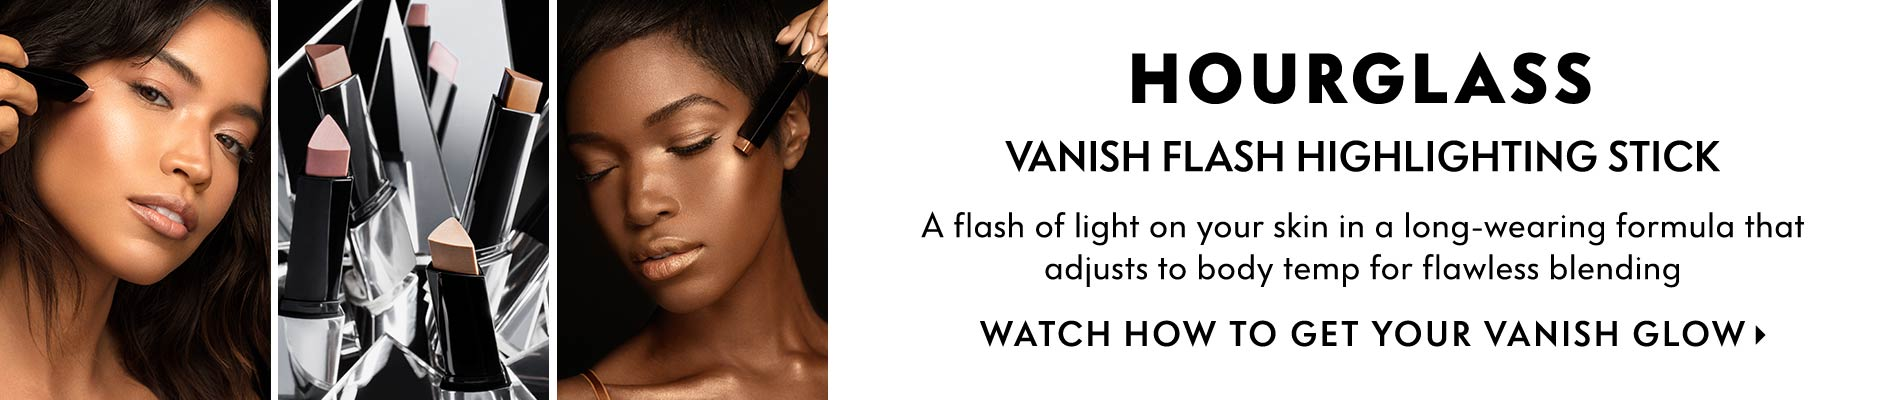 Hourglass: Vanish Flash Highlighting Stick - A flash of light on your skin in a long-wearing formula that adjusts to body temp for flawless blending